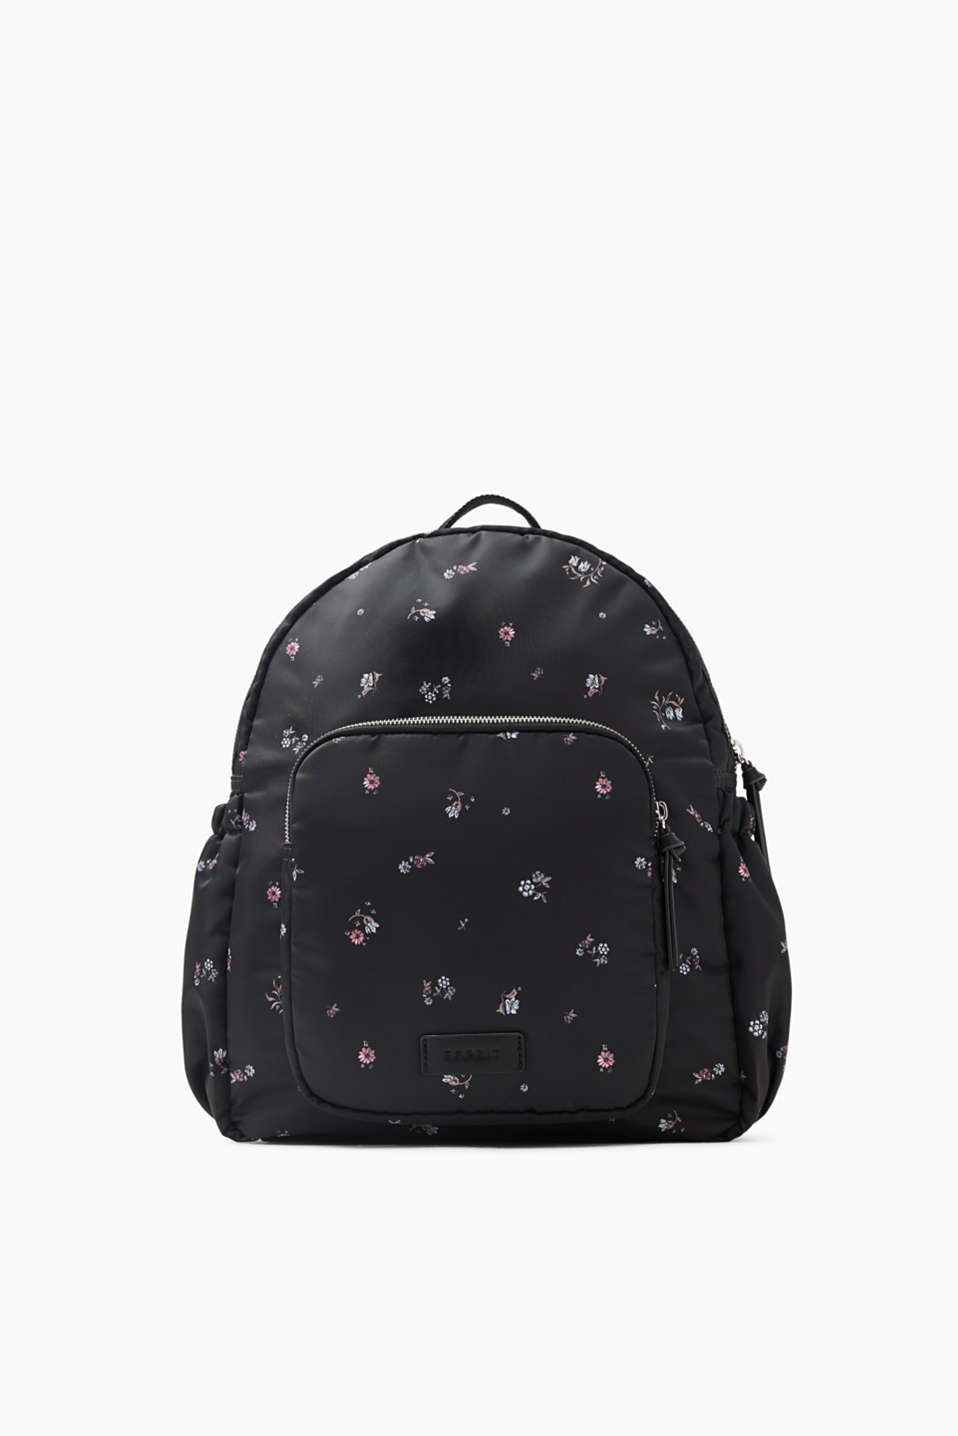 Function meets style with this rucksack made of padded nylon with plenty of storage space and a cool floral print.